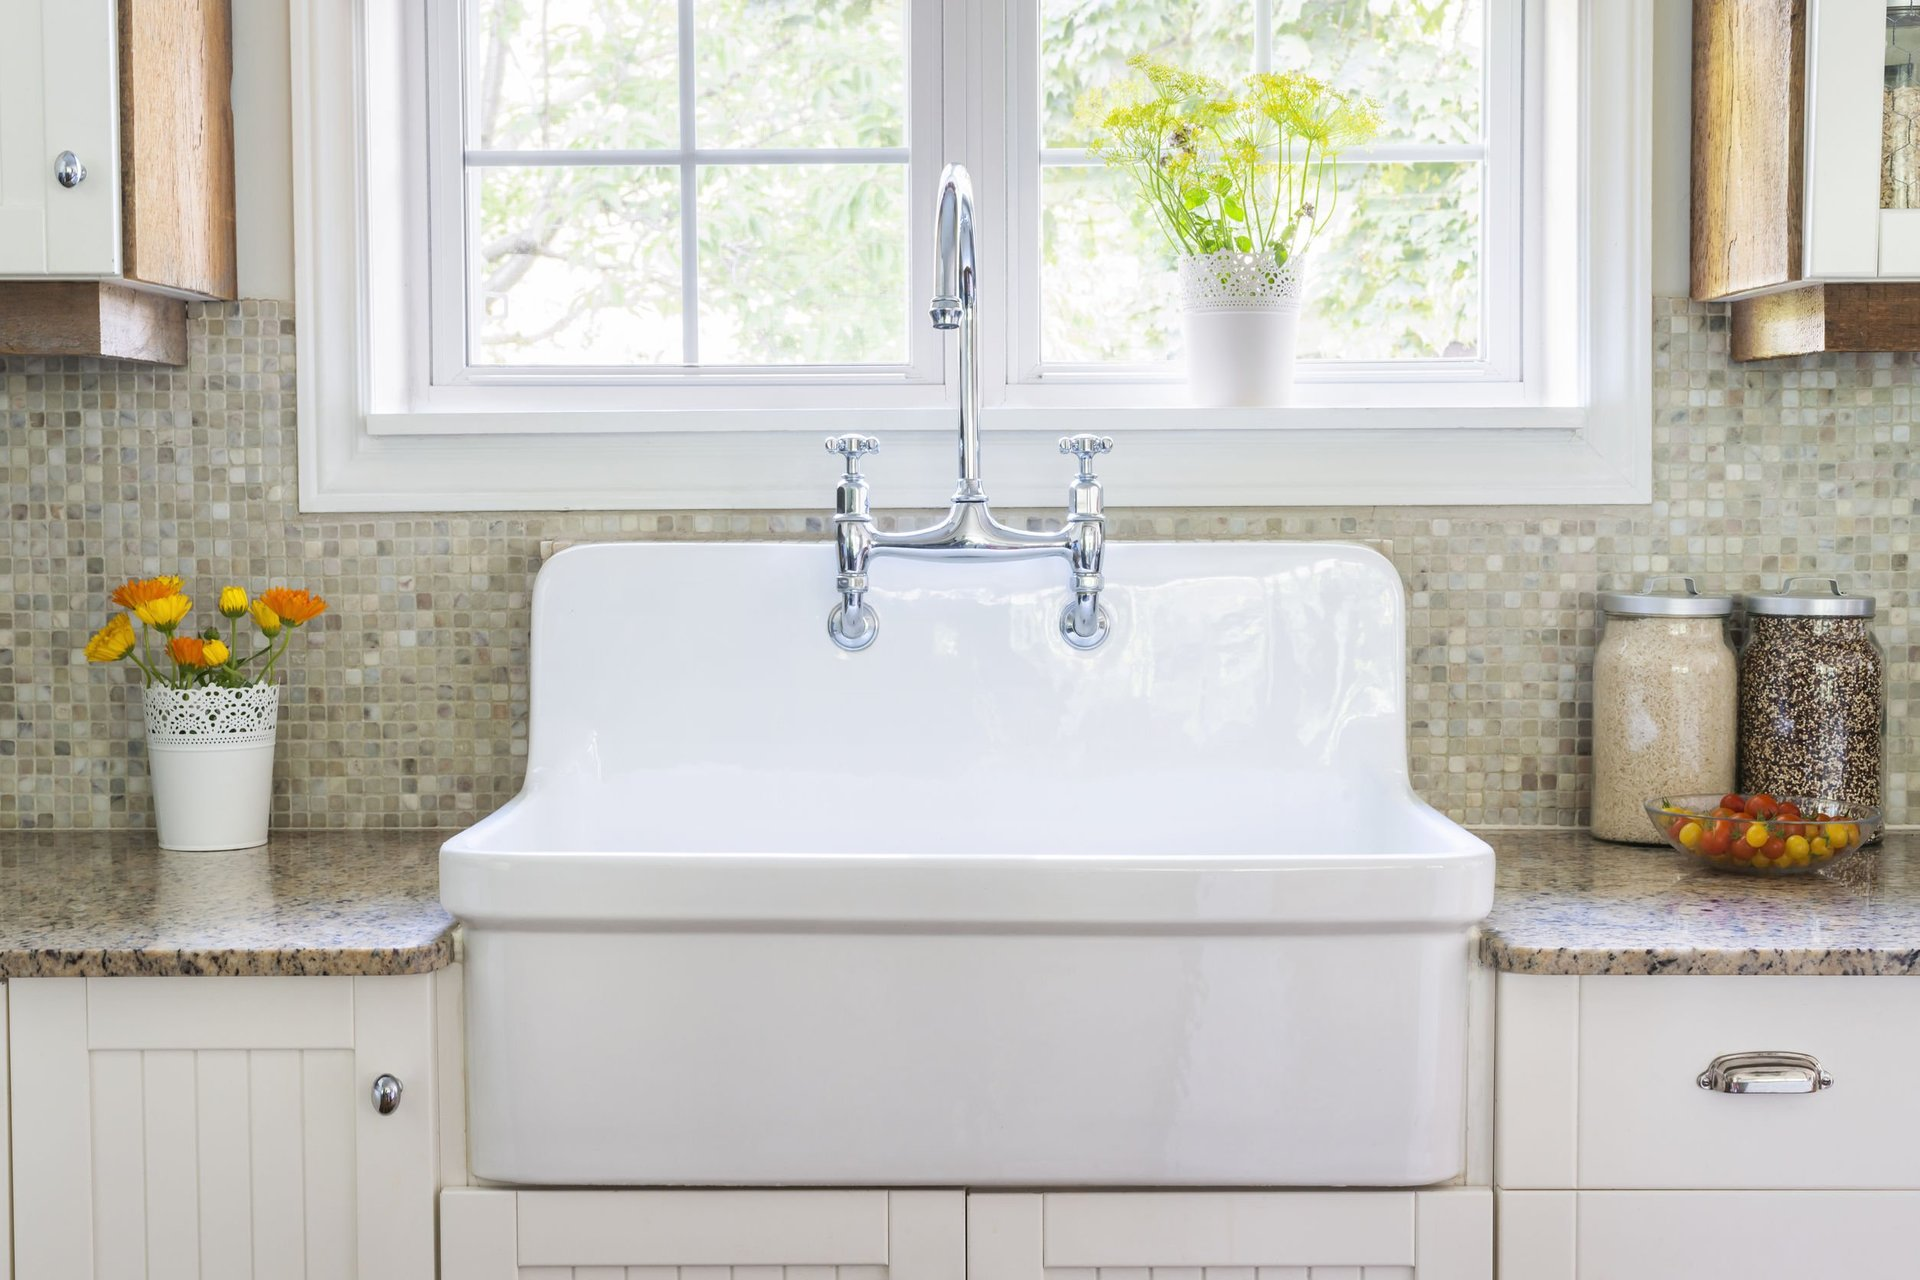 Reliable Plumbers in Johns Island